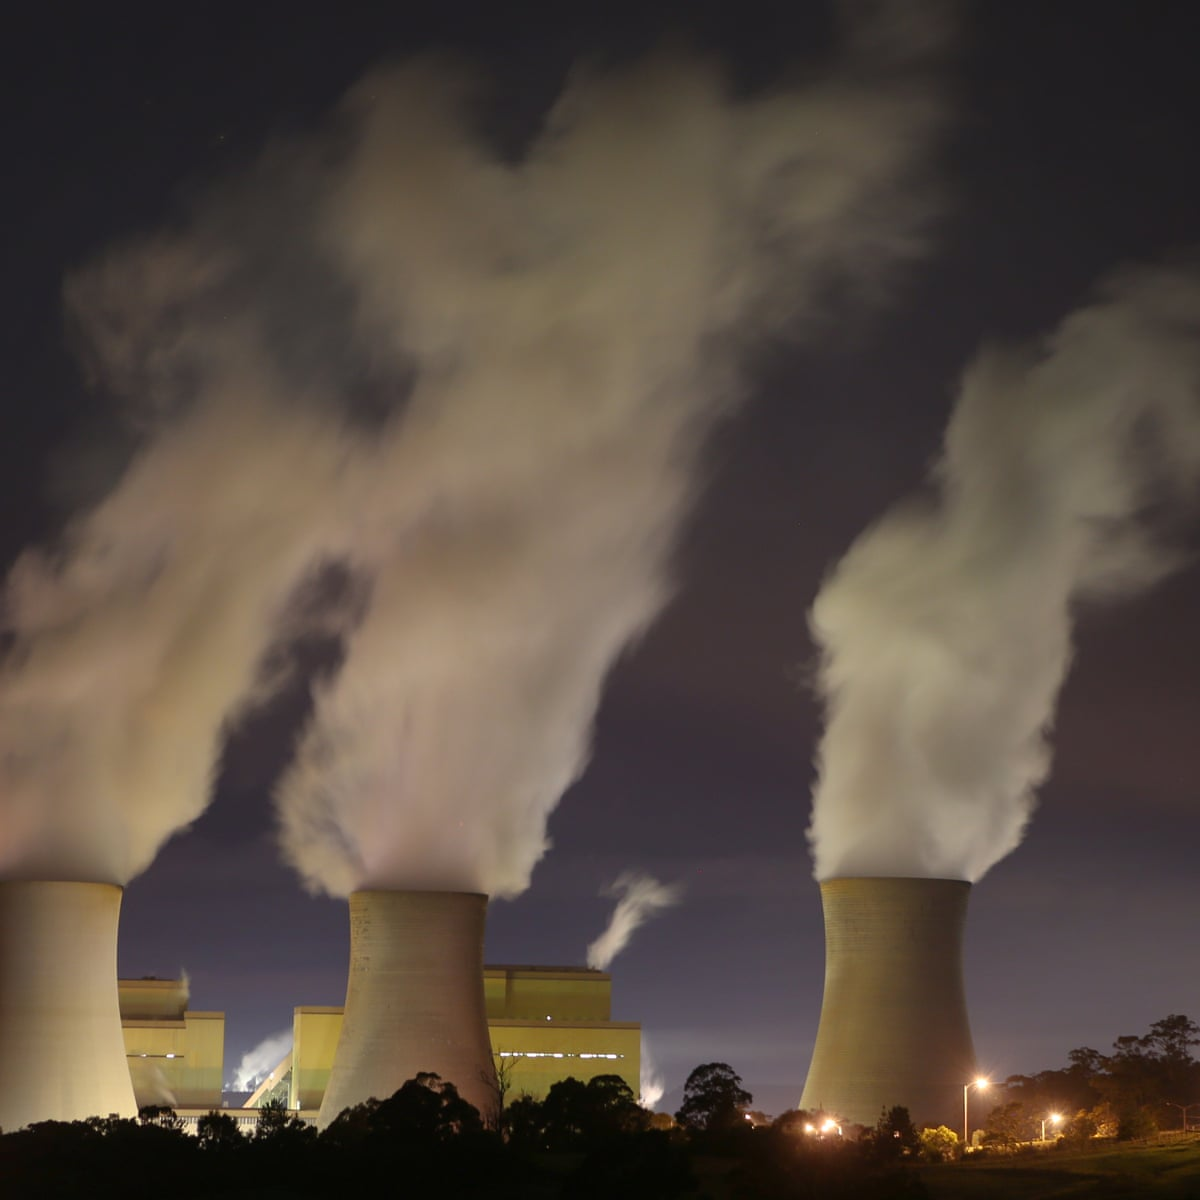 Long, ominous shot of factories emitting green house gases amongst trees